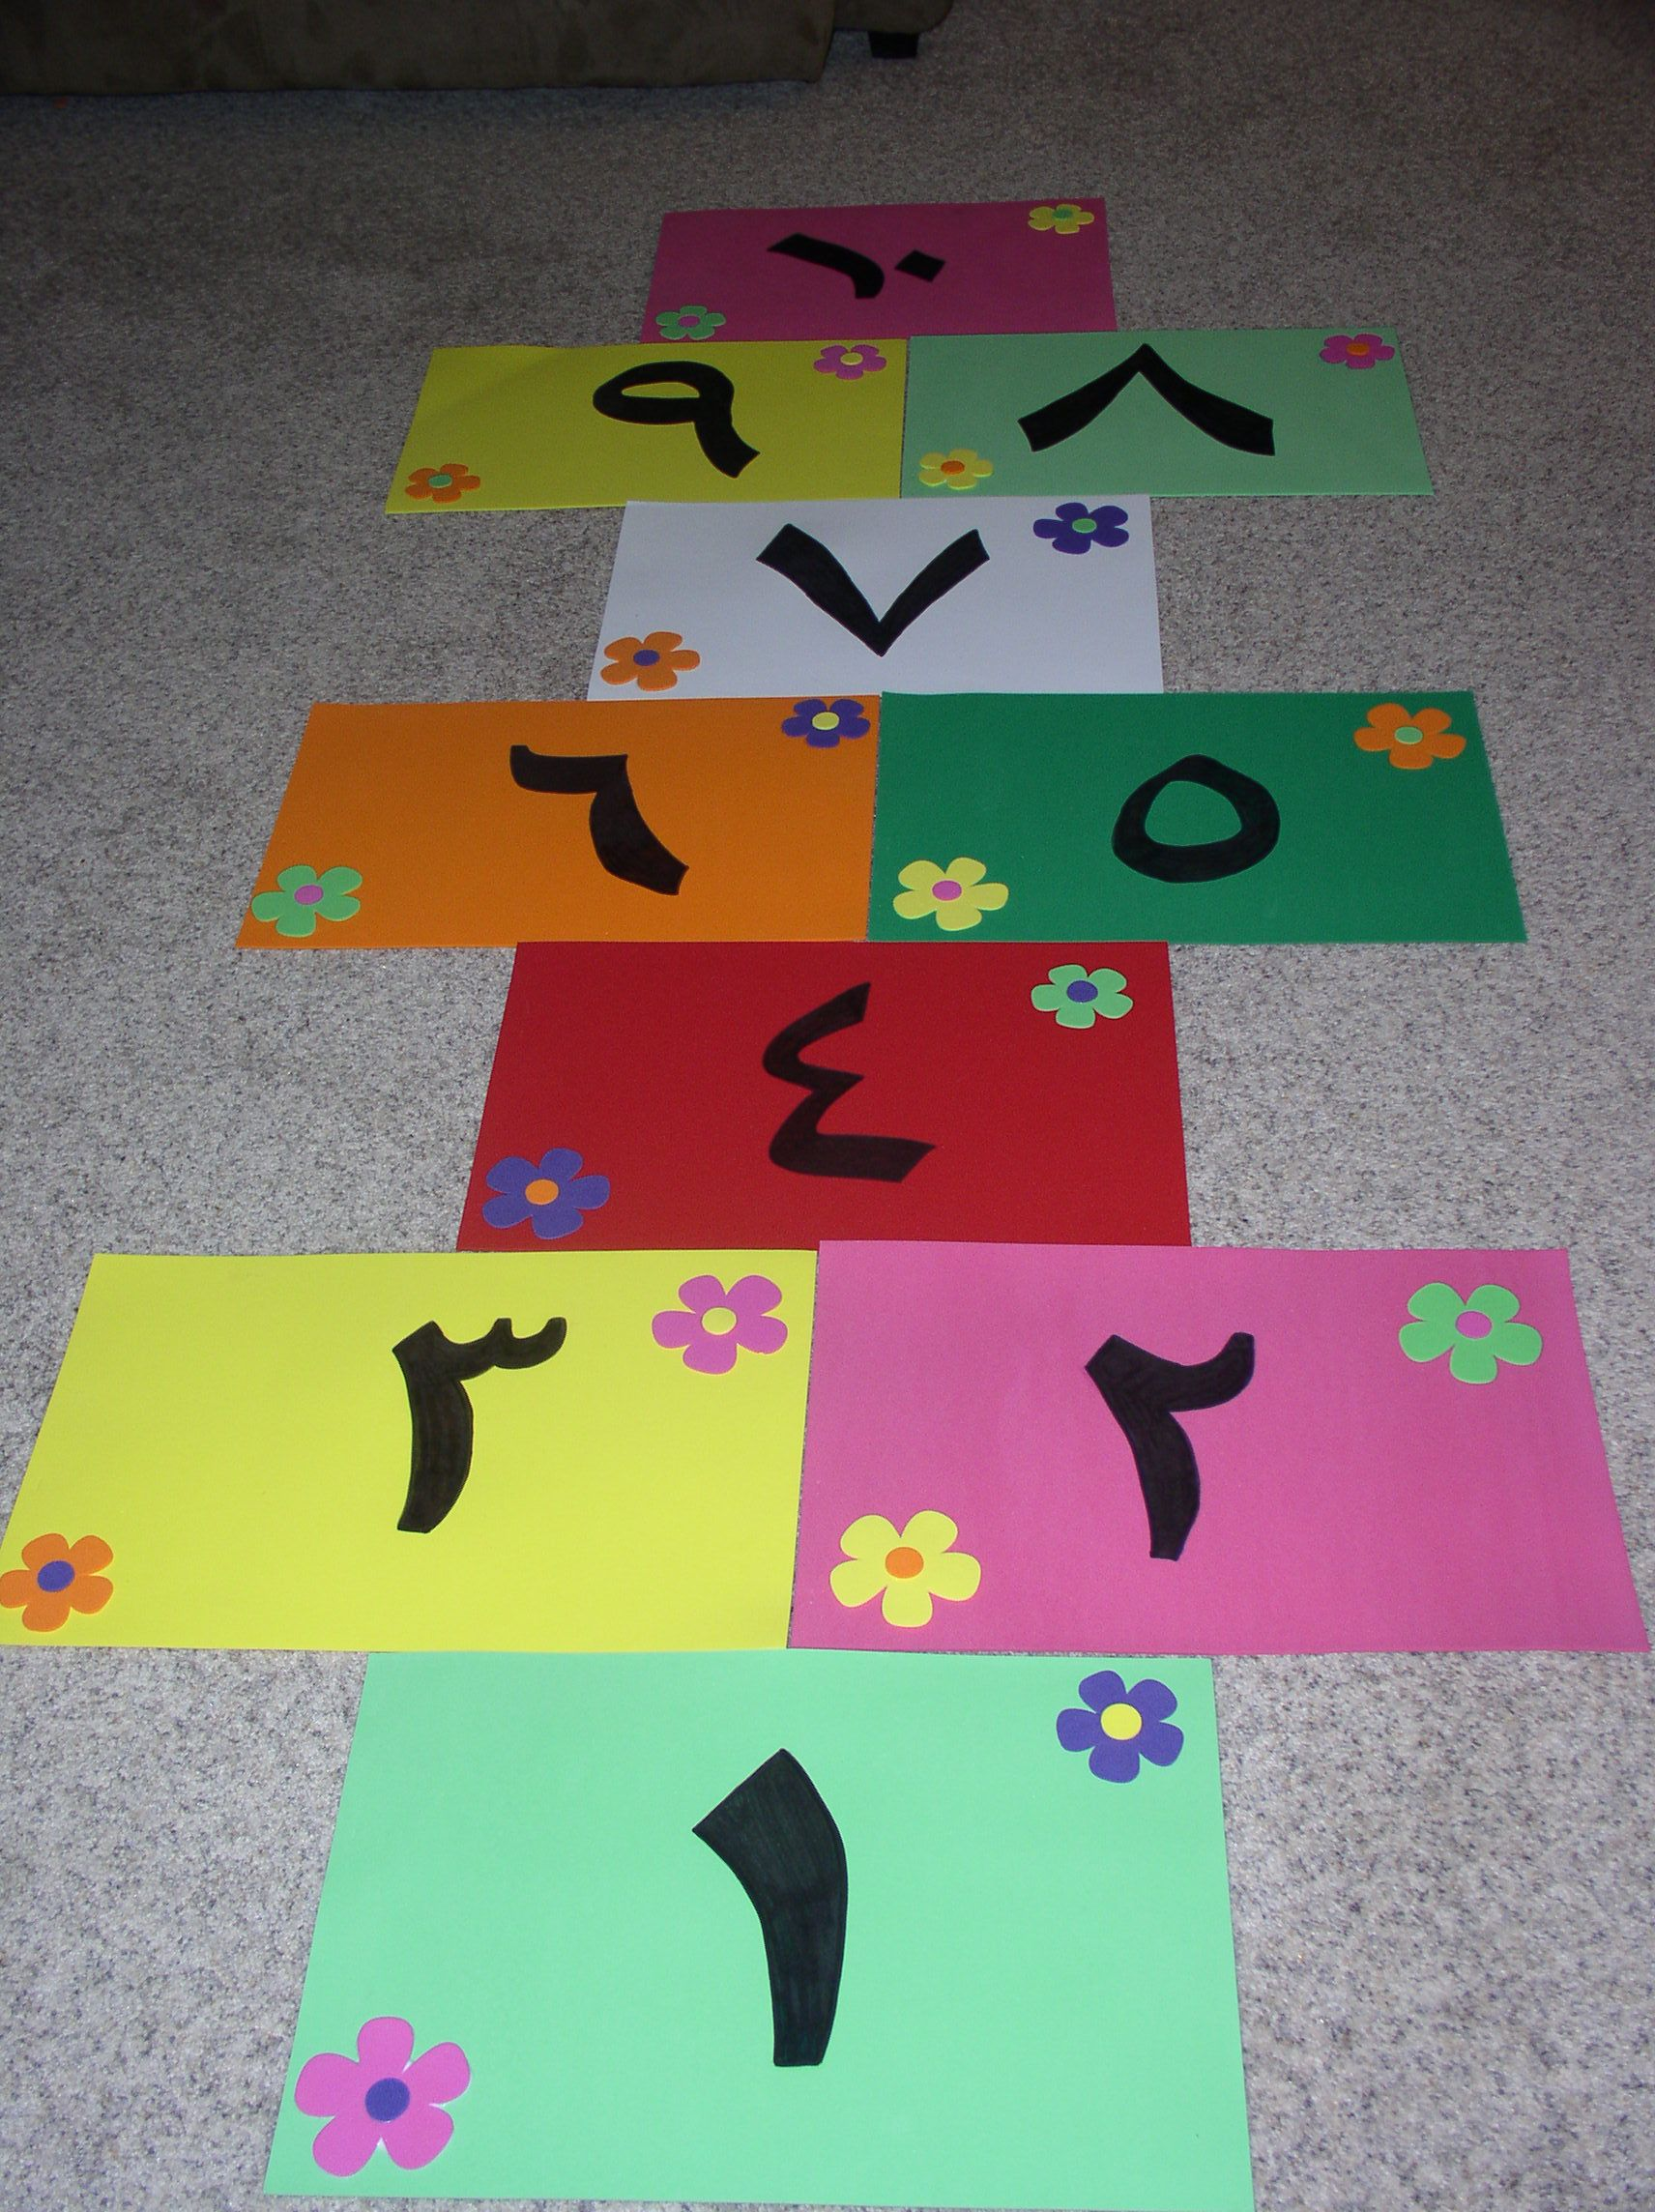 How to make your own Arabic Number Hopscotch Game